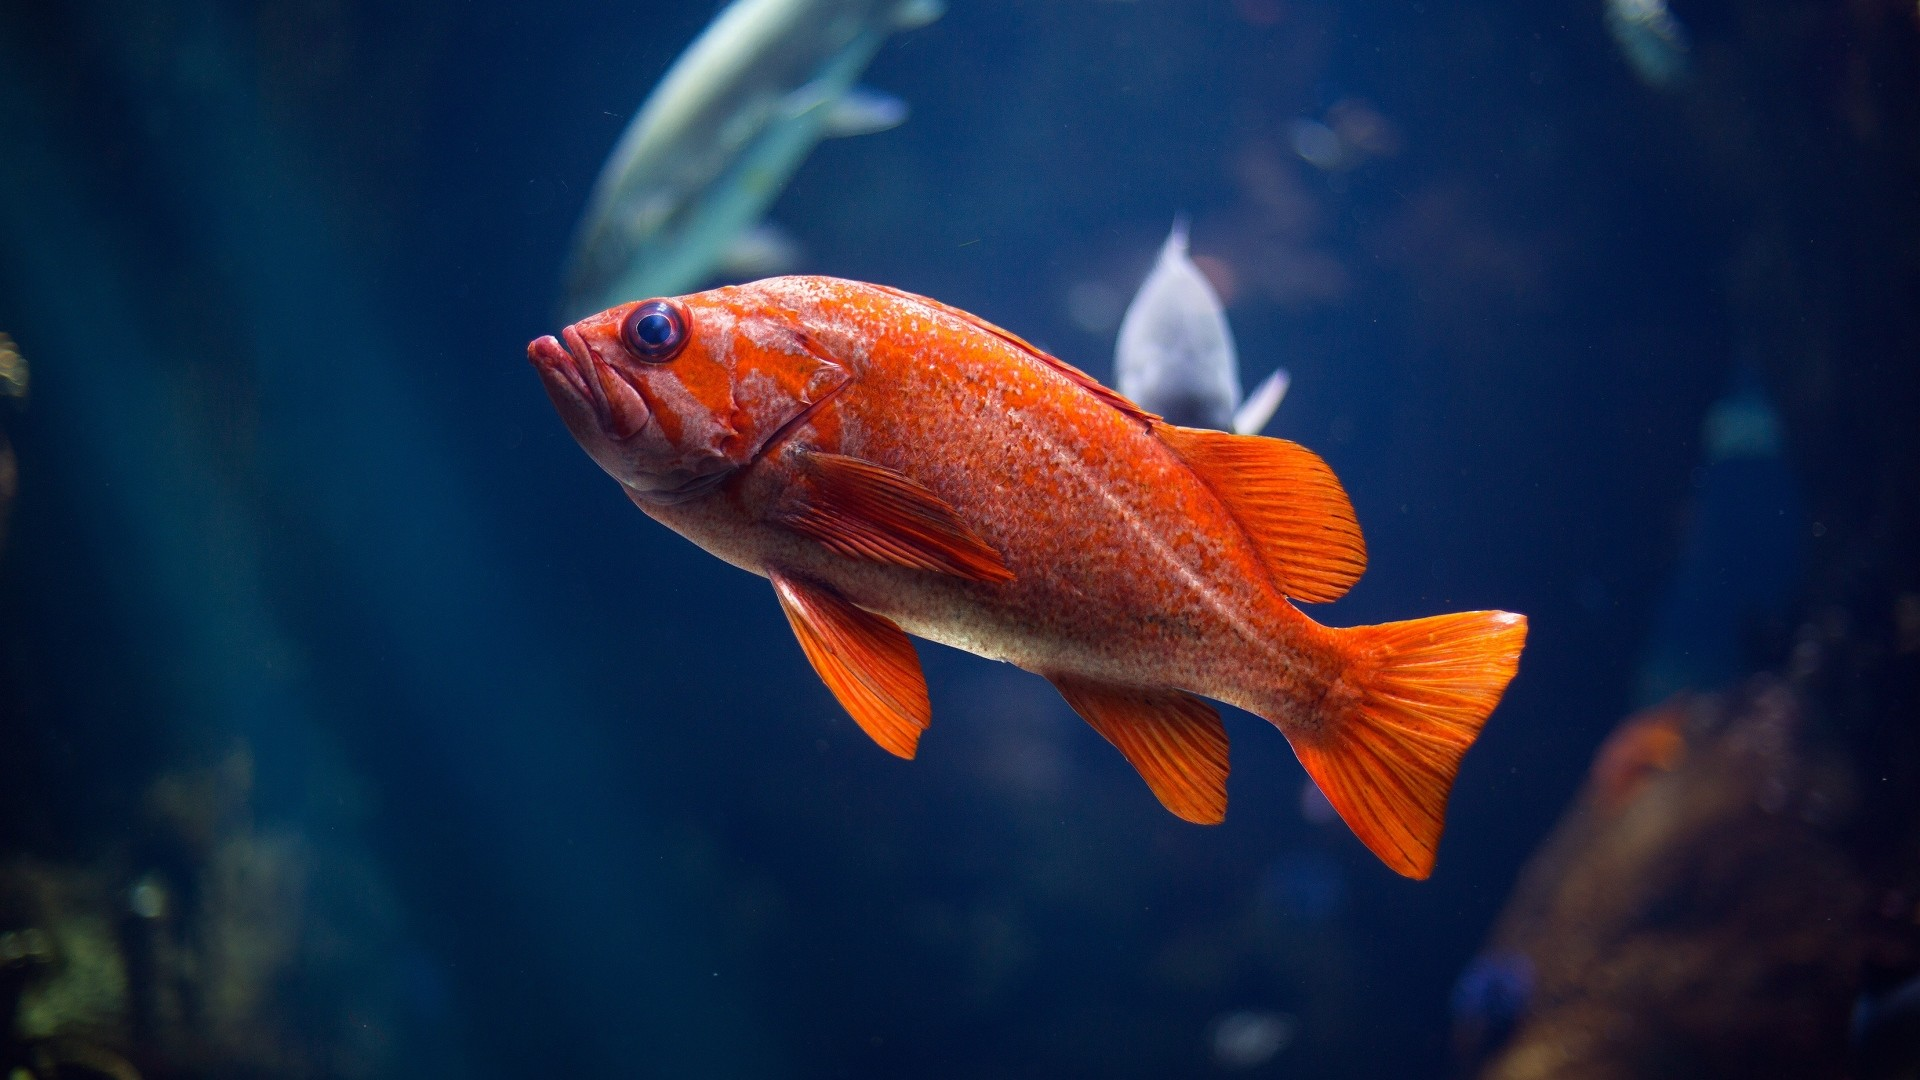 An82 Apple Ios9 Fish Live Background Dark Blue: Red Fish Wallpaper ·① WallpaperTag